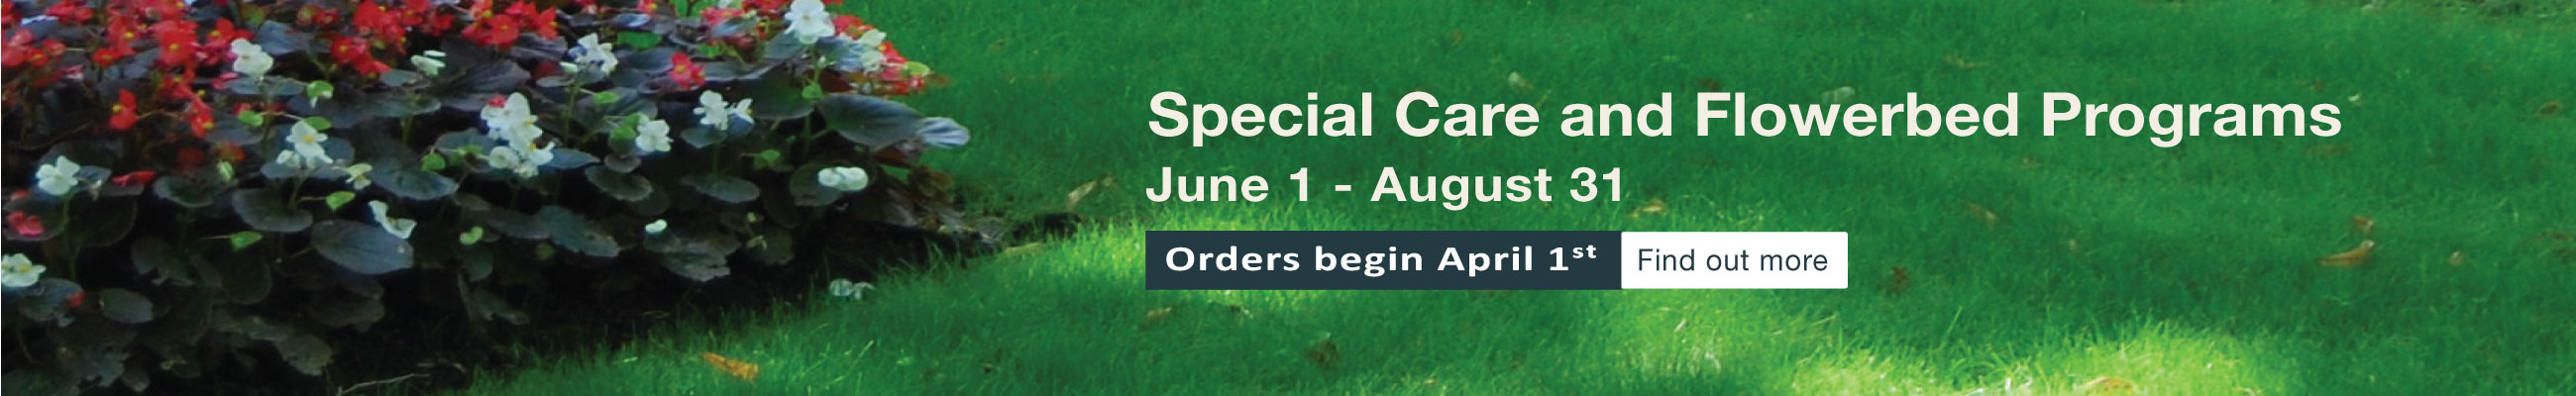 Special Care and Flower Bed Programs 2018